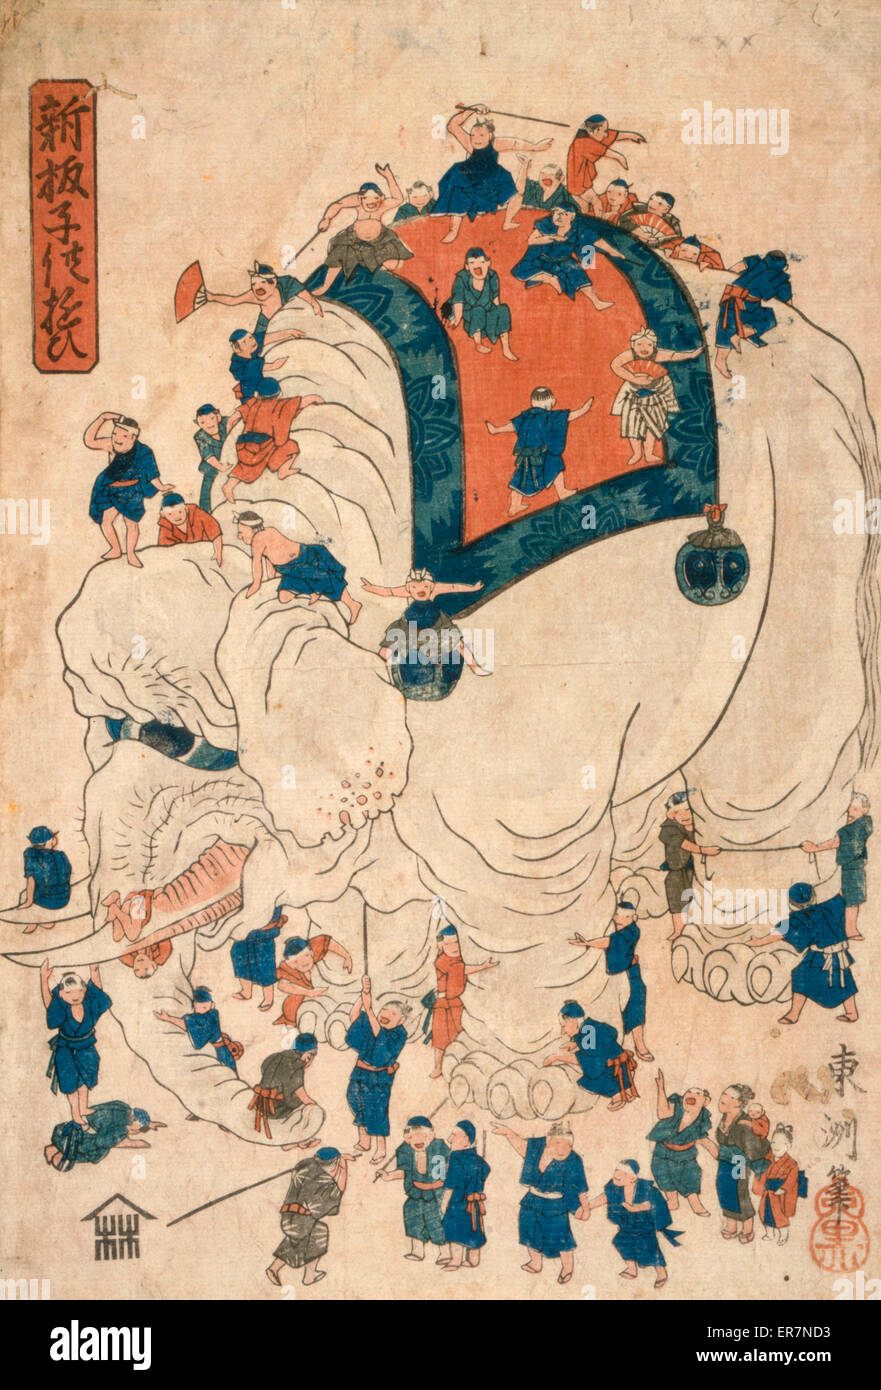 Children exploring an elephant. Ukiyo-e print illustration showing masses of children playing over, under, and around - Stock Image